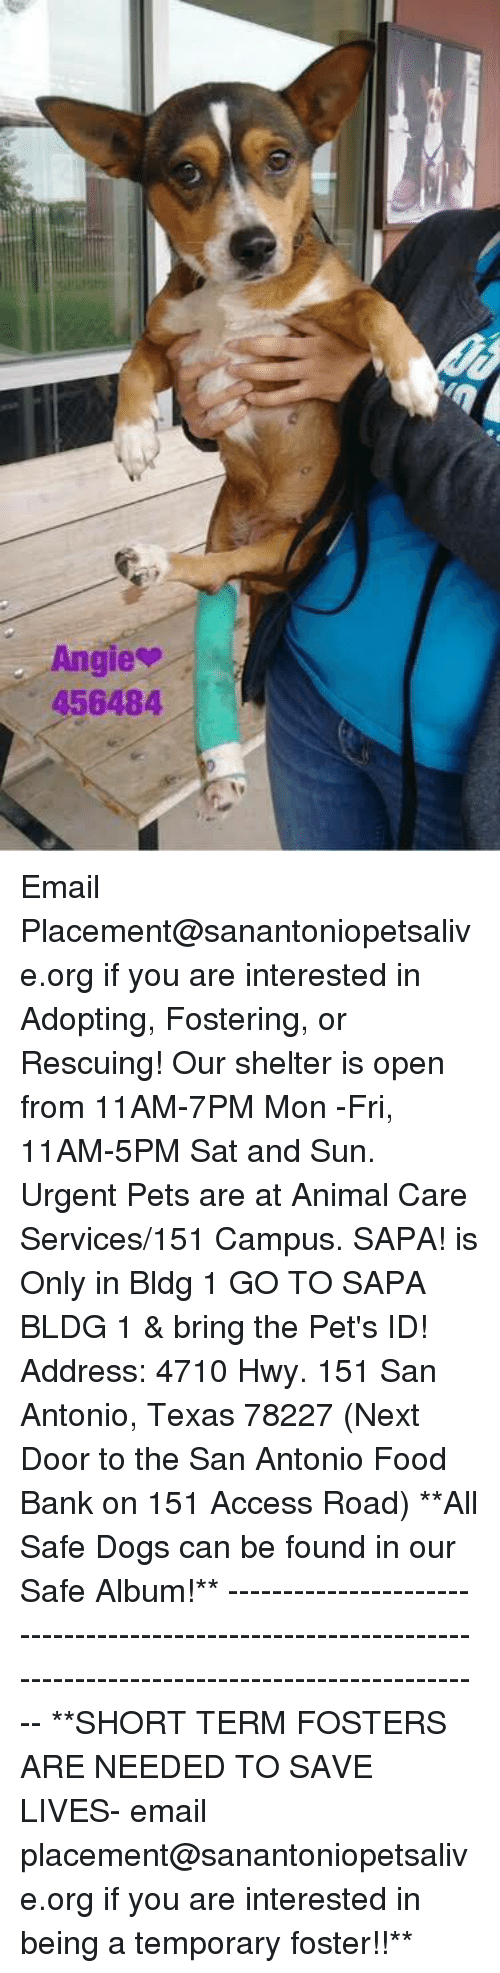 Dogs, Food, and Memes: gie  456484 Email Placement@sanantoniopetsalive.org if you are interested in Adopting, Fostering, or Rescuing!  Our shelter is open from 11AM-7PM Mon -Fri, 11AM-5PM Sat and Sun.  Urgent Pets are at Animal Care Services/151 Campus. SAPA! is Only in Bldg 1 GO TO SAPA BLDG 1 & bring the Pet's ID! Address: 4710 Hwy. 151 San Antonio, Texas 78227 (Next Door to the San Antonio Food Bank on 151 Access Road)  **All Safe Dogs can be found in our Safe Album!** ---------------------------------------------------------------------------------------------------------- **SHORT TERM FOSTERS ARE NEEDED TO SAVE LIVES- email placement@sanantoniopetsalive.org if you are interested in being a temporary foster!!**